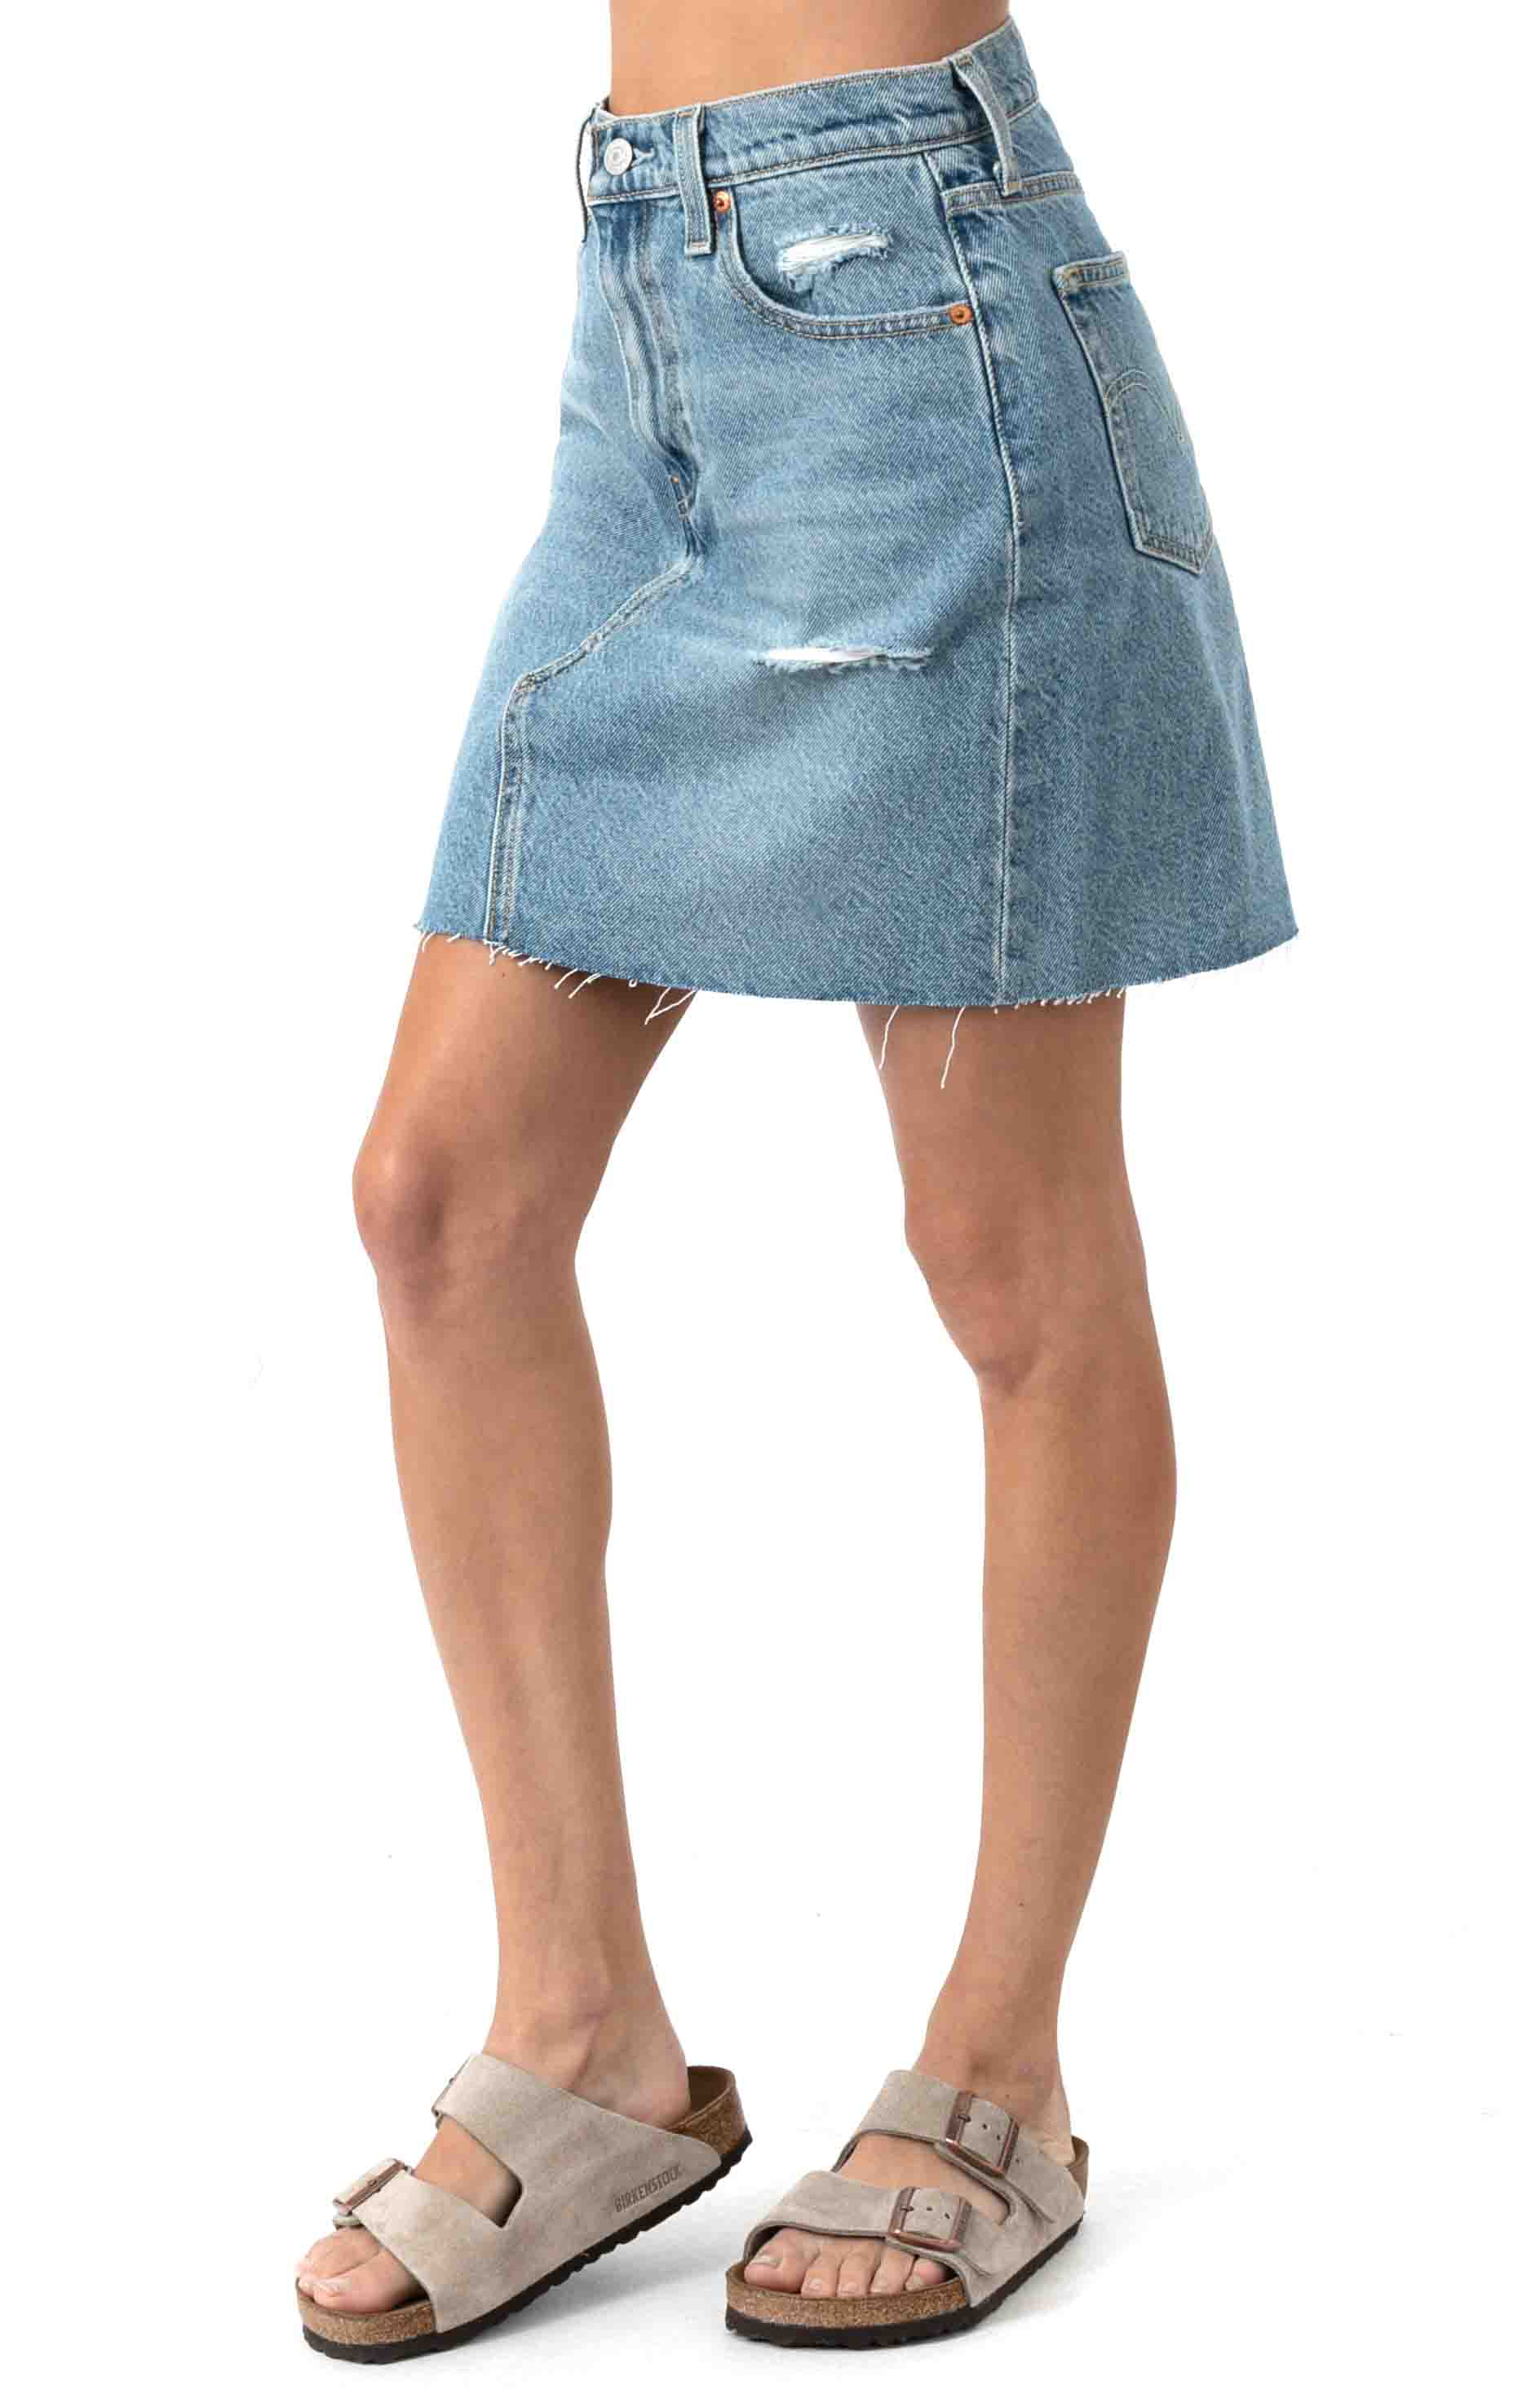 High Rise Decon Iconic Skirt - Rack And Ruin 2